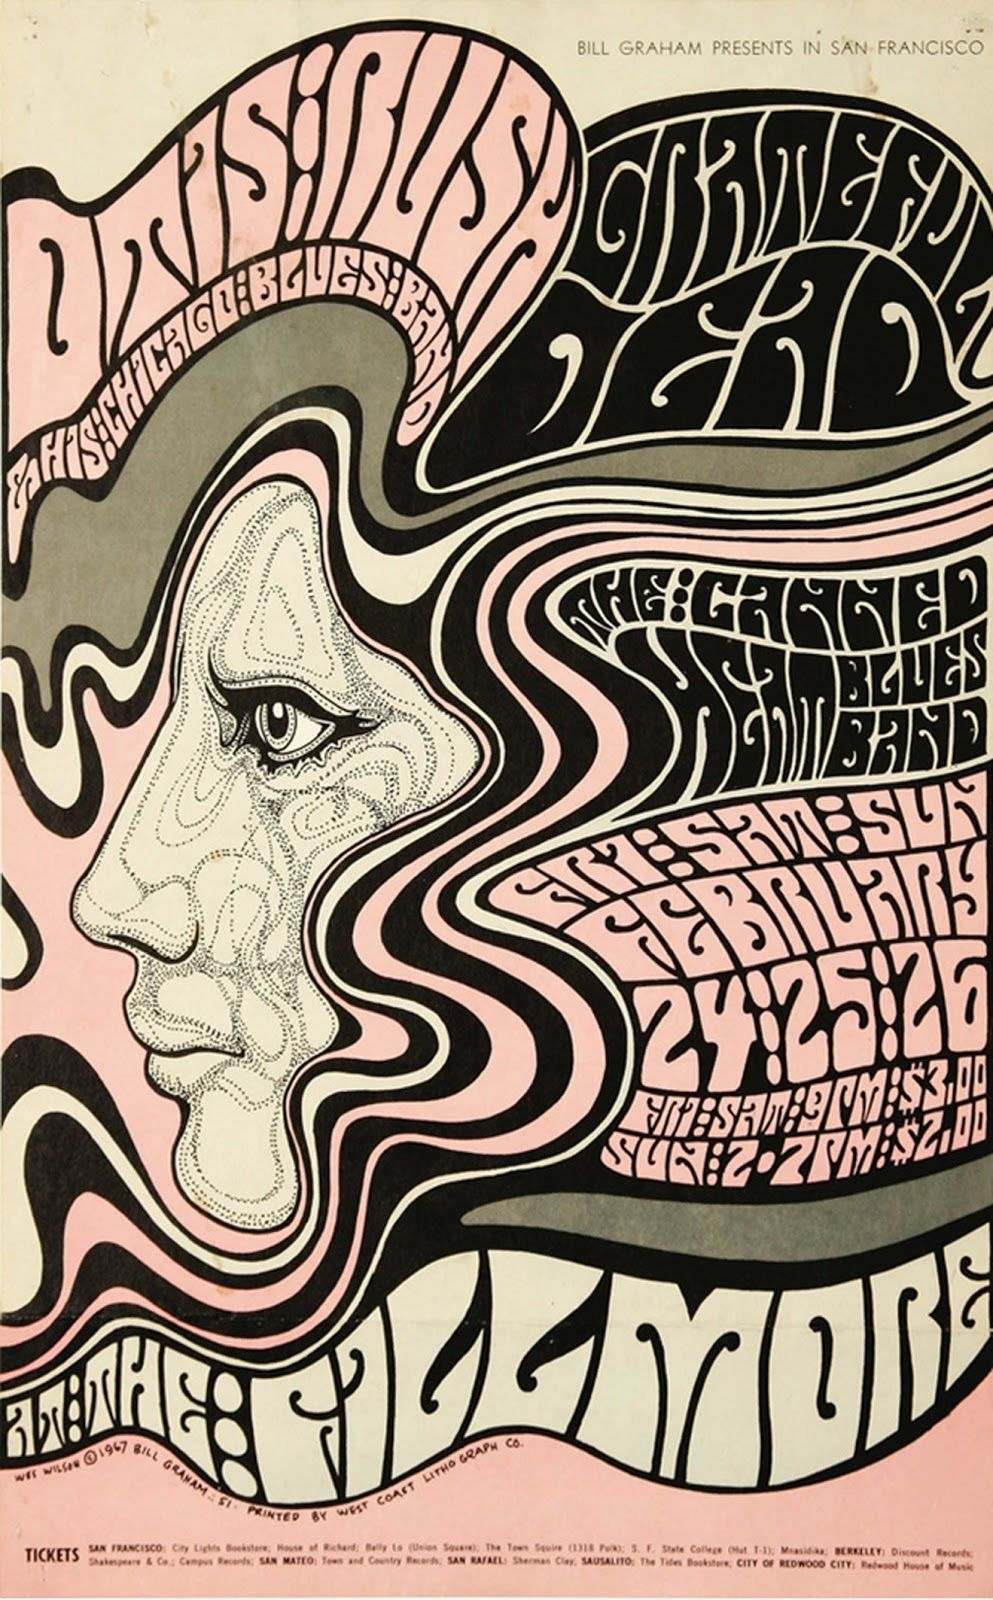 Pin by 77 on ILLUSTRATION in 2019 | Rock posters, Psychedelic art